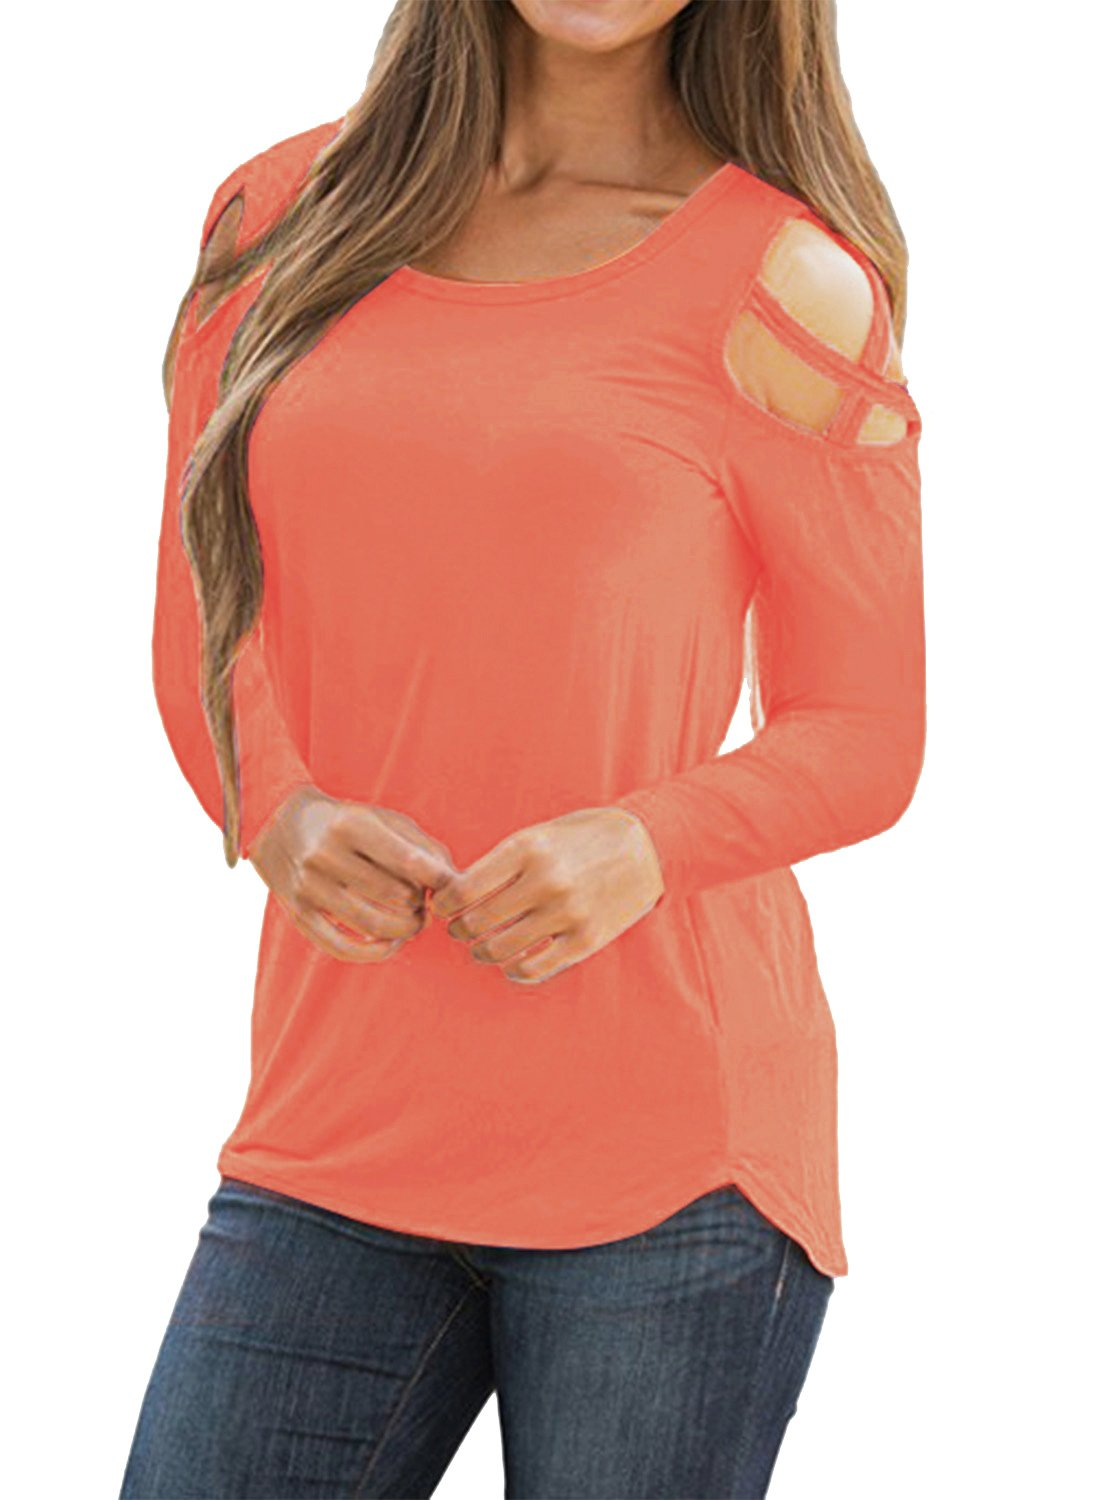 Adreamly Women's Casual Summer Long Sleeve Loose Strappy Cold Shoulder Tops Basic T Shirts Blouses Coral Pink Large